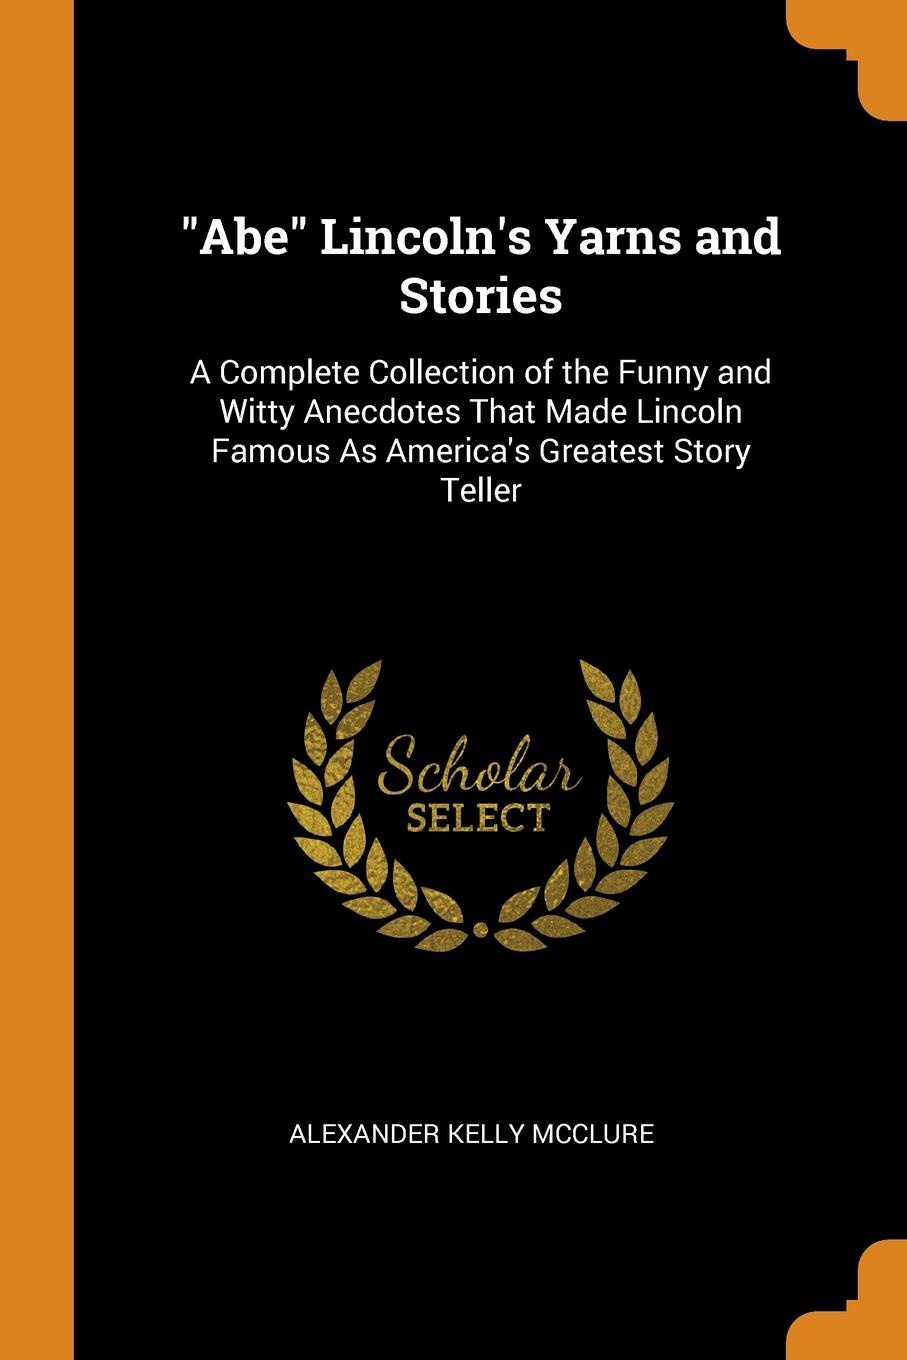 """Alexander Kelly McClure. """"Abe"""" Lincoln.s Yarns and Stories. A Complete Collection of the Funny and Witty Anecdotes That Made Lincoln Famous As America.s Greatest Story Teller"""